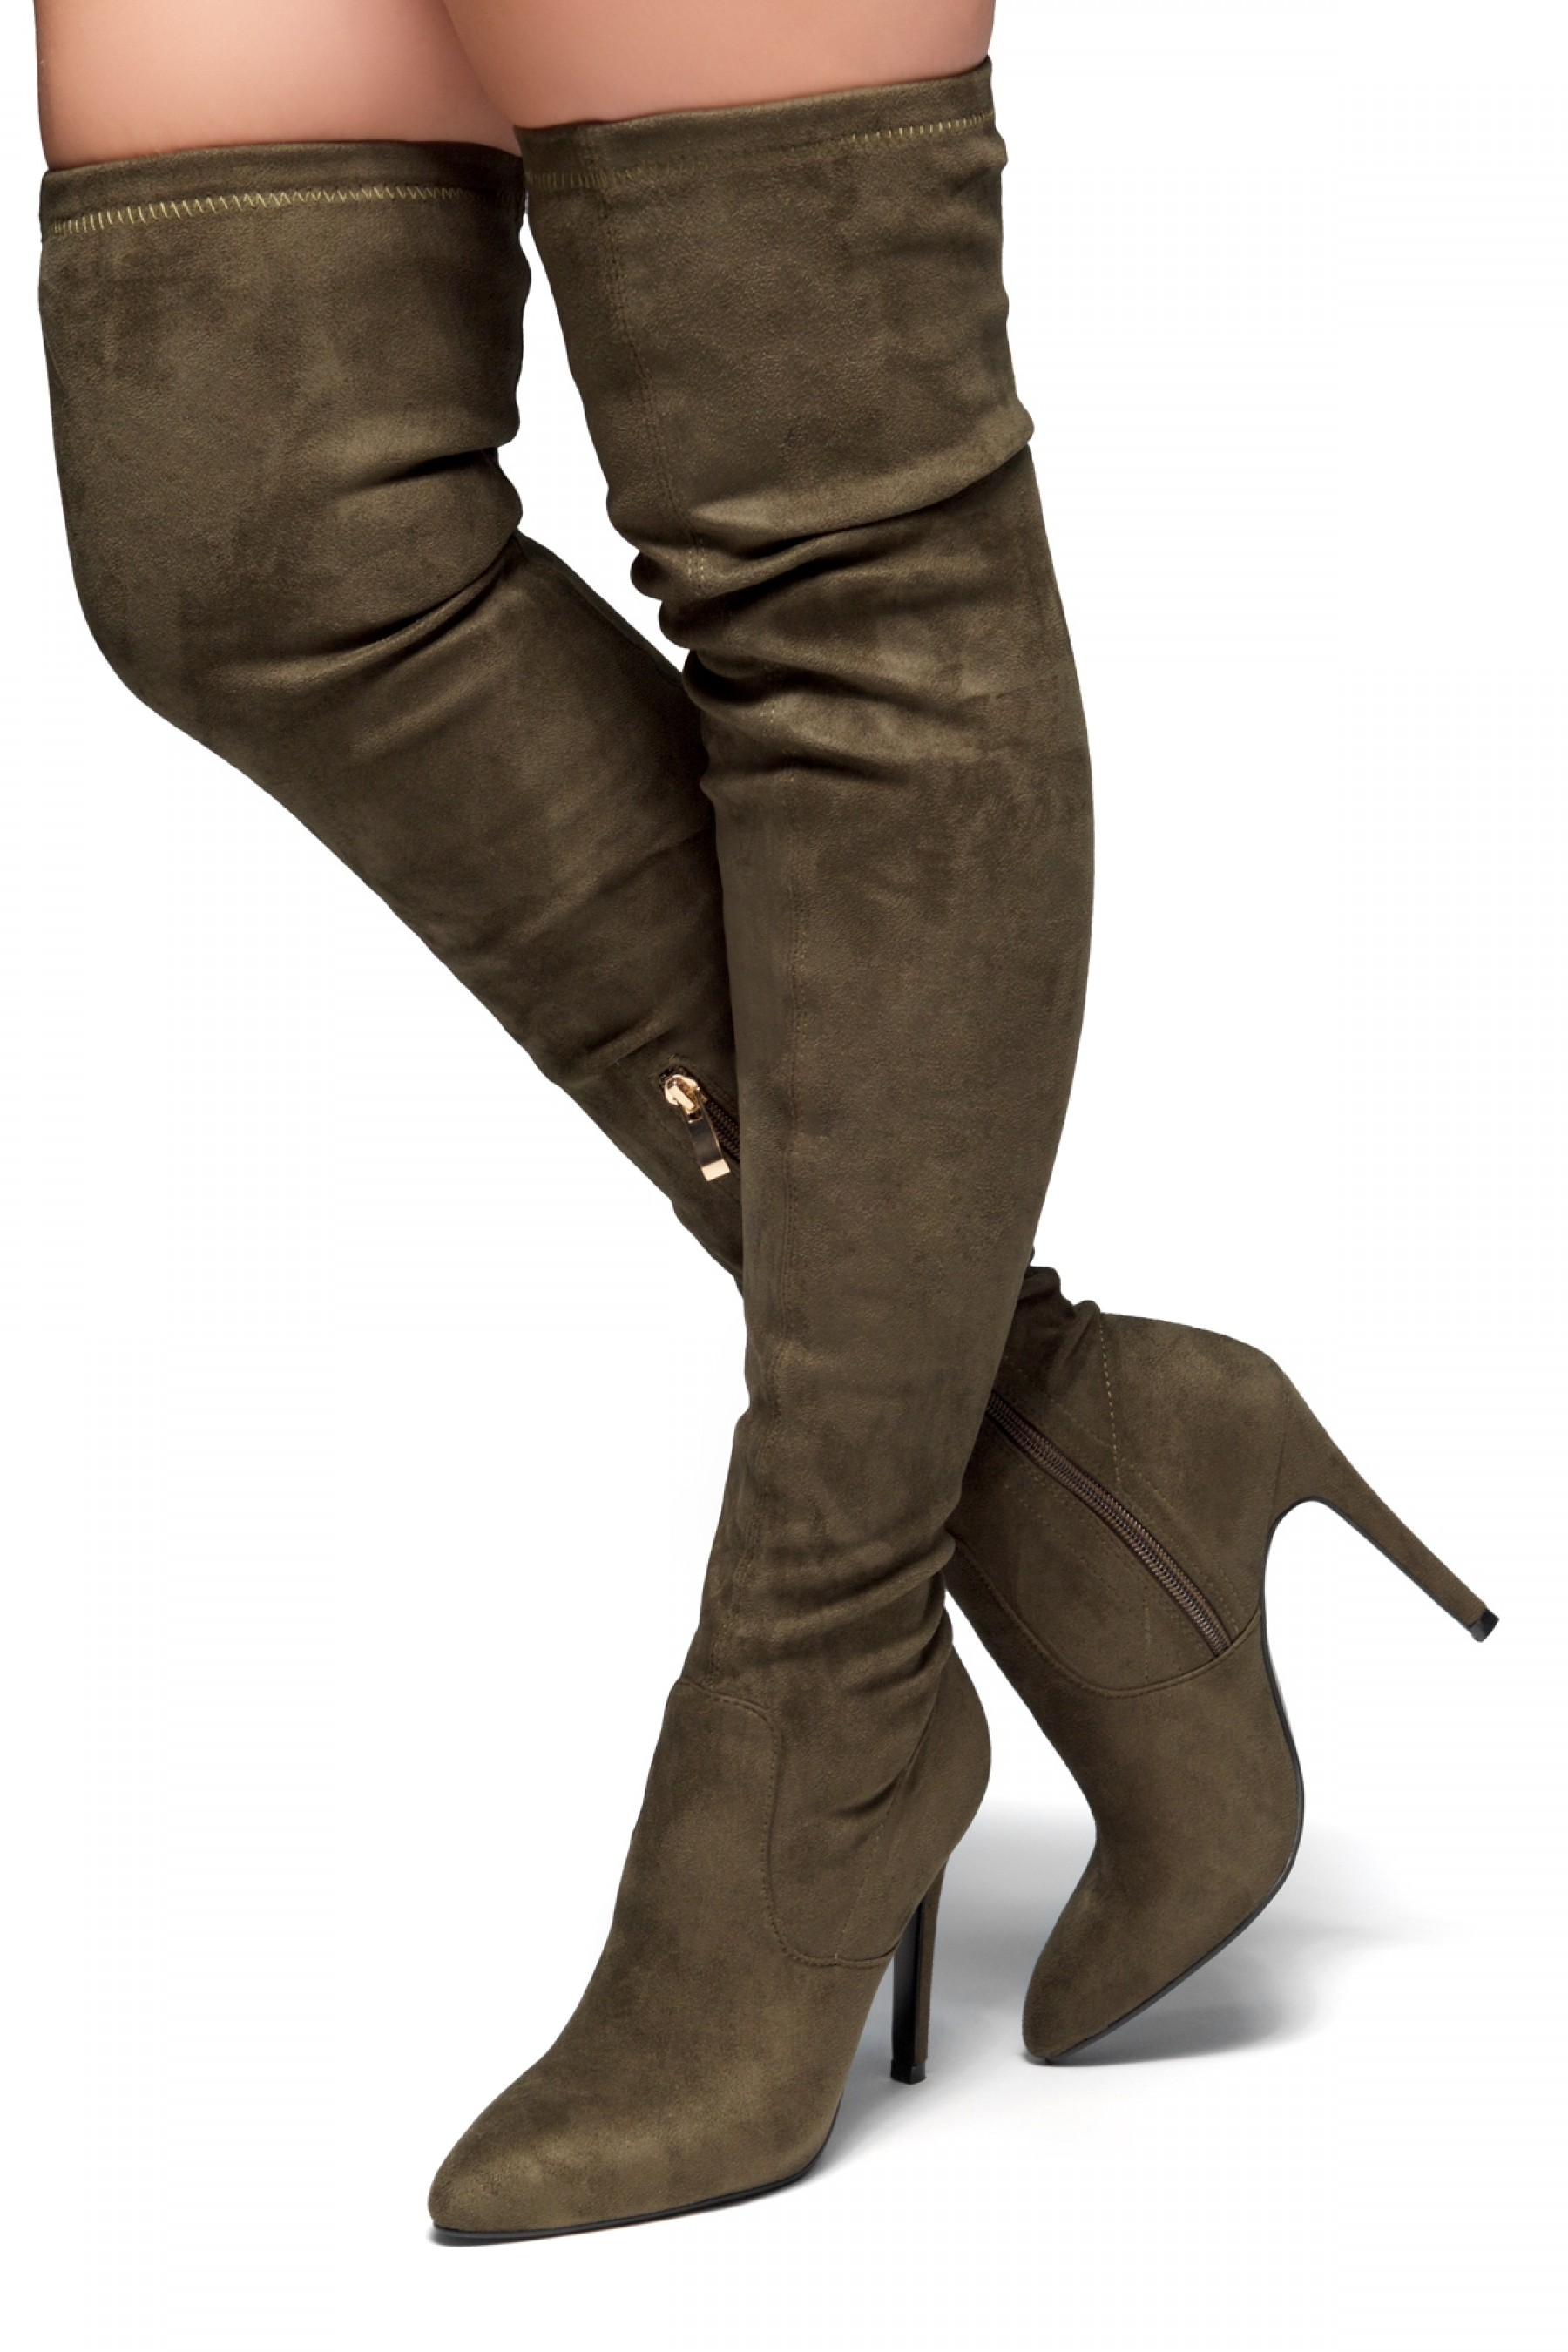 HerStyle Ellinnaa-Stiletto heel, Thigh high, Sock Boots(Olive)